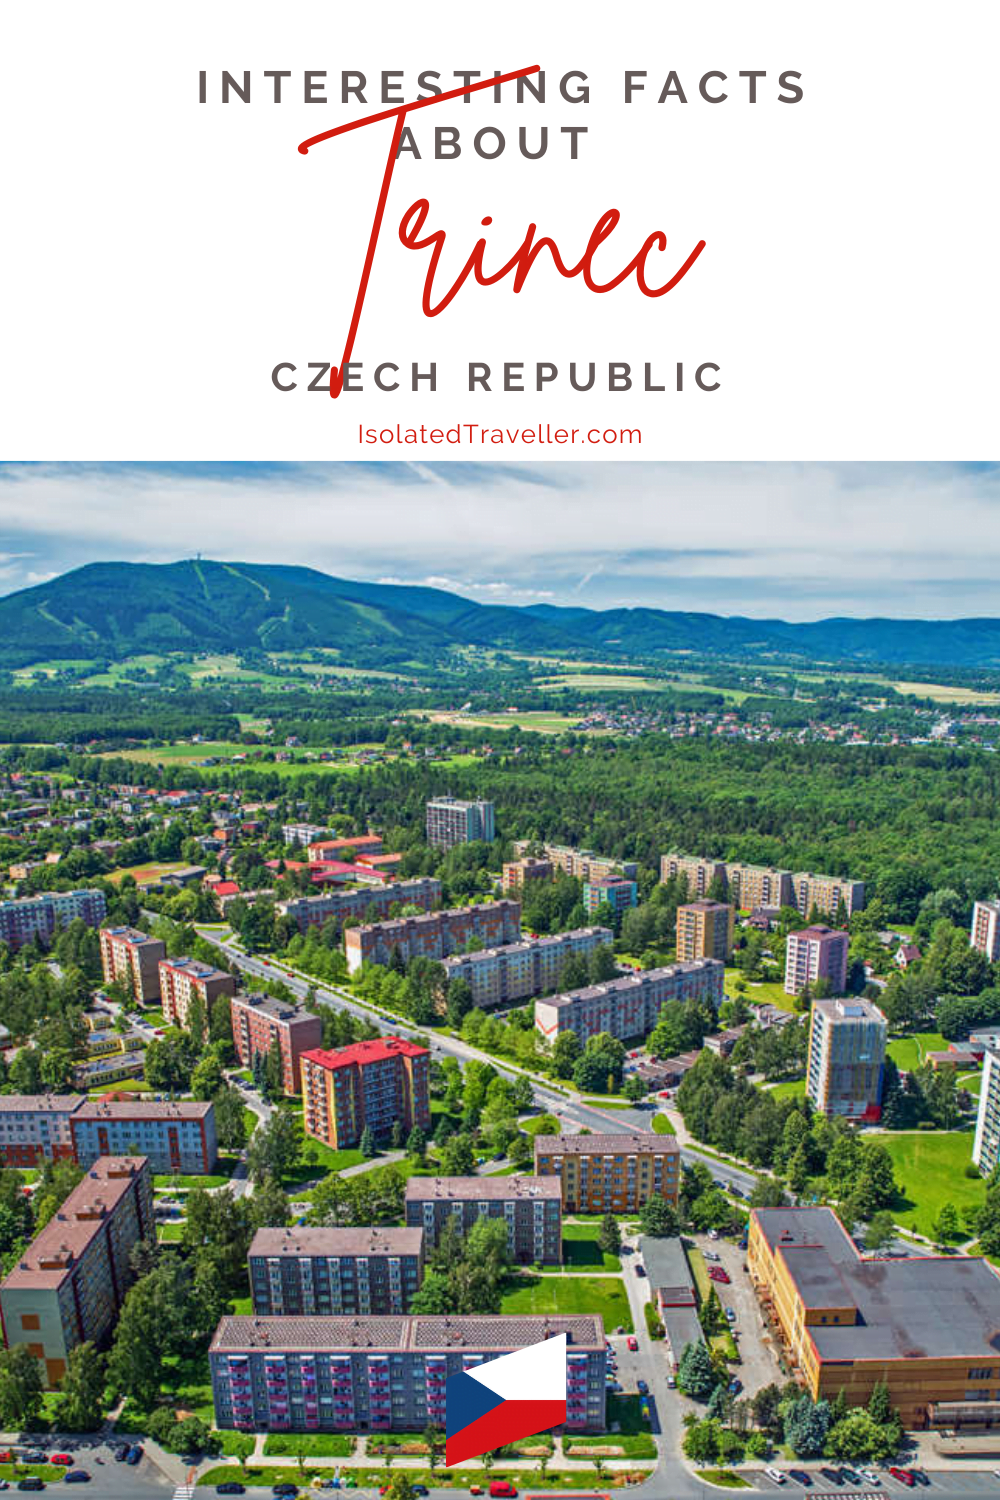 Facts About Trinec